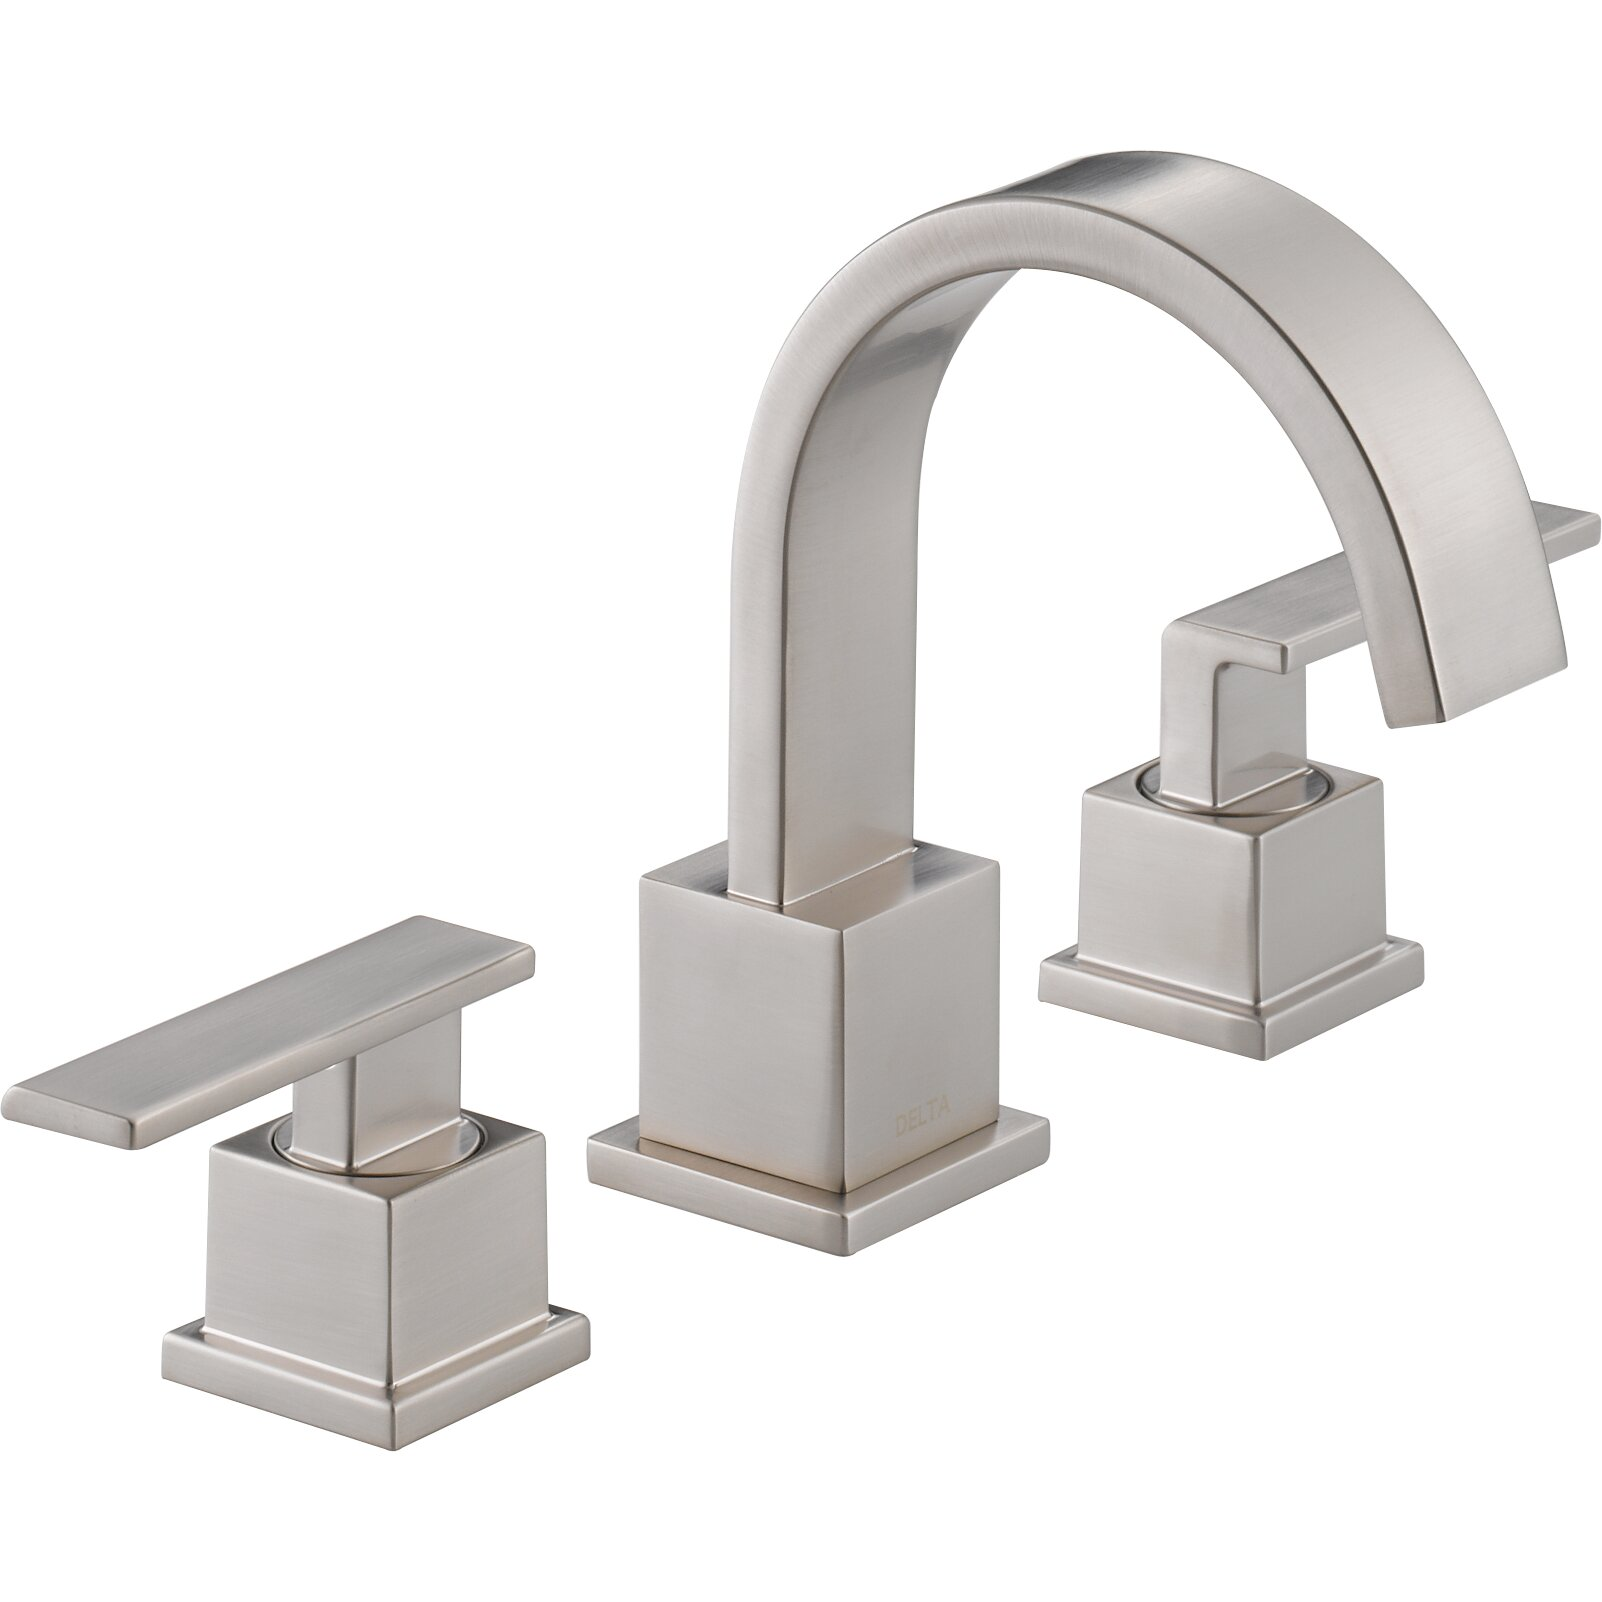 Delta vero two handle widespread bathroom faucet reviews wayfair for Delta widespread bathroom faucet